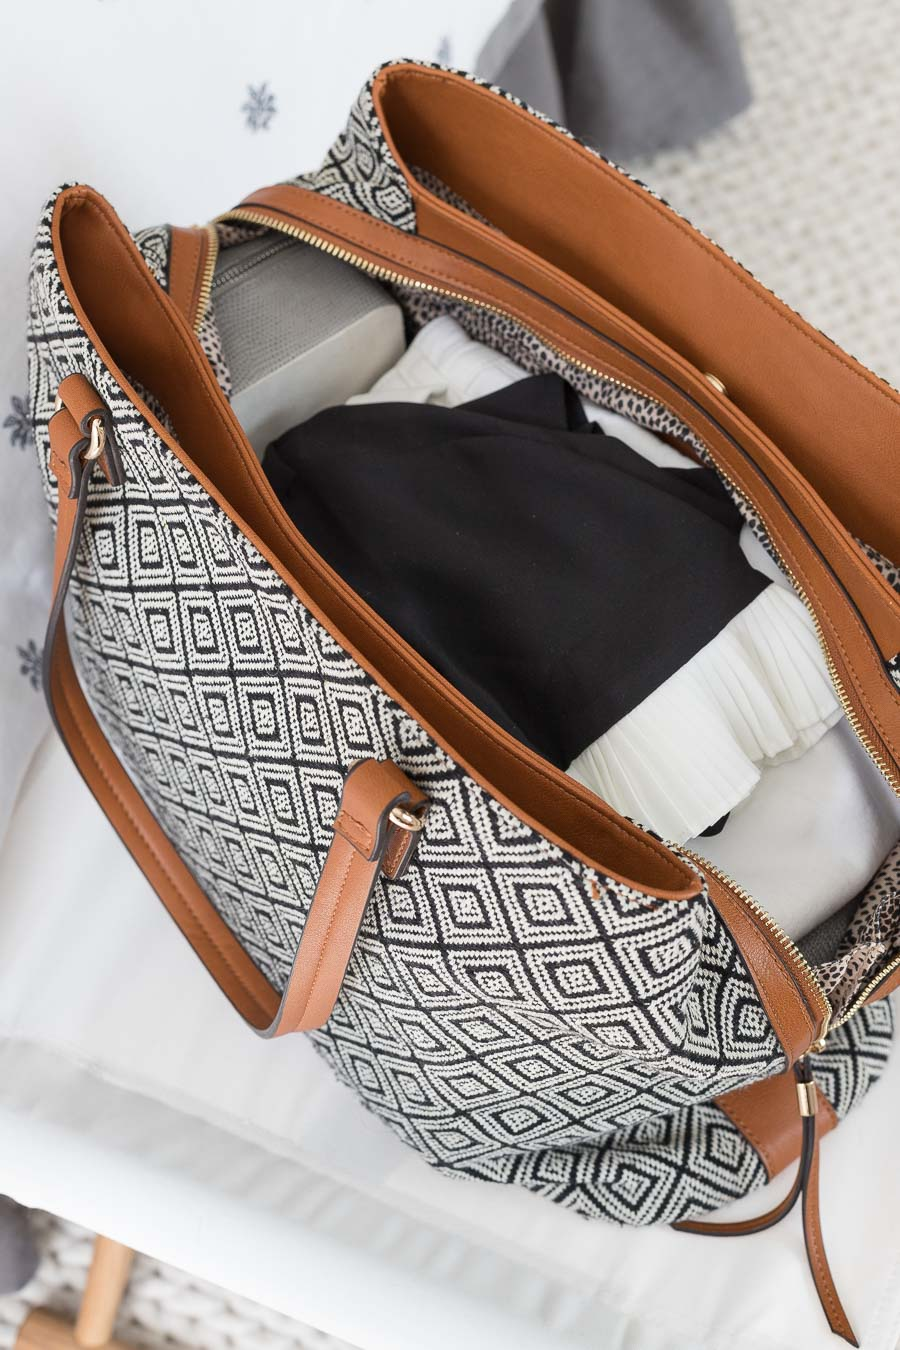 This weekender bag is roomy enough to hold everything you need for a weekend getaway (and it's super stylish too!)